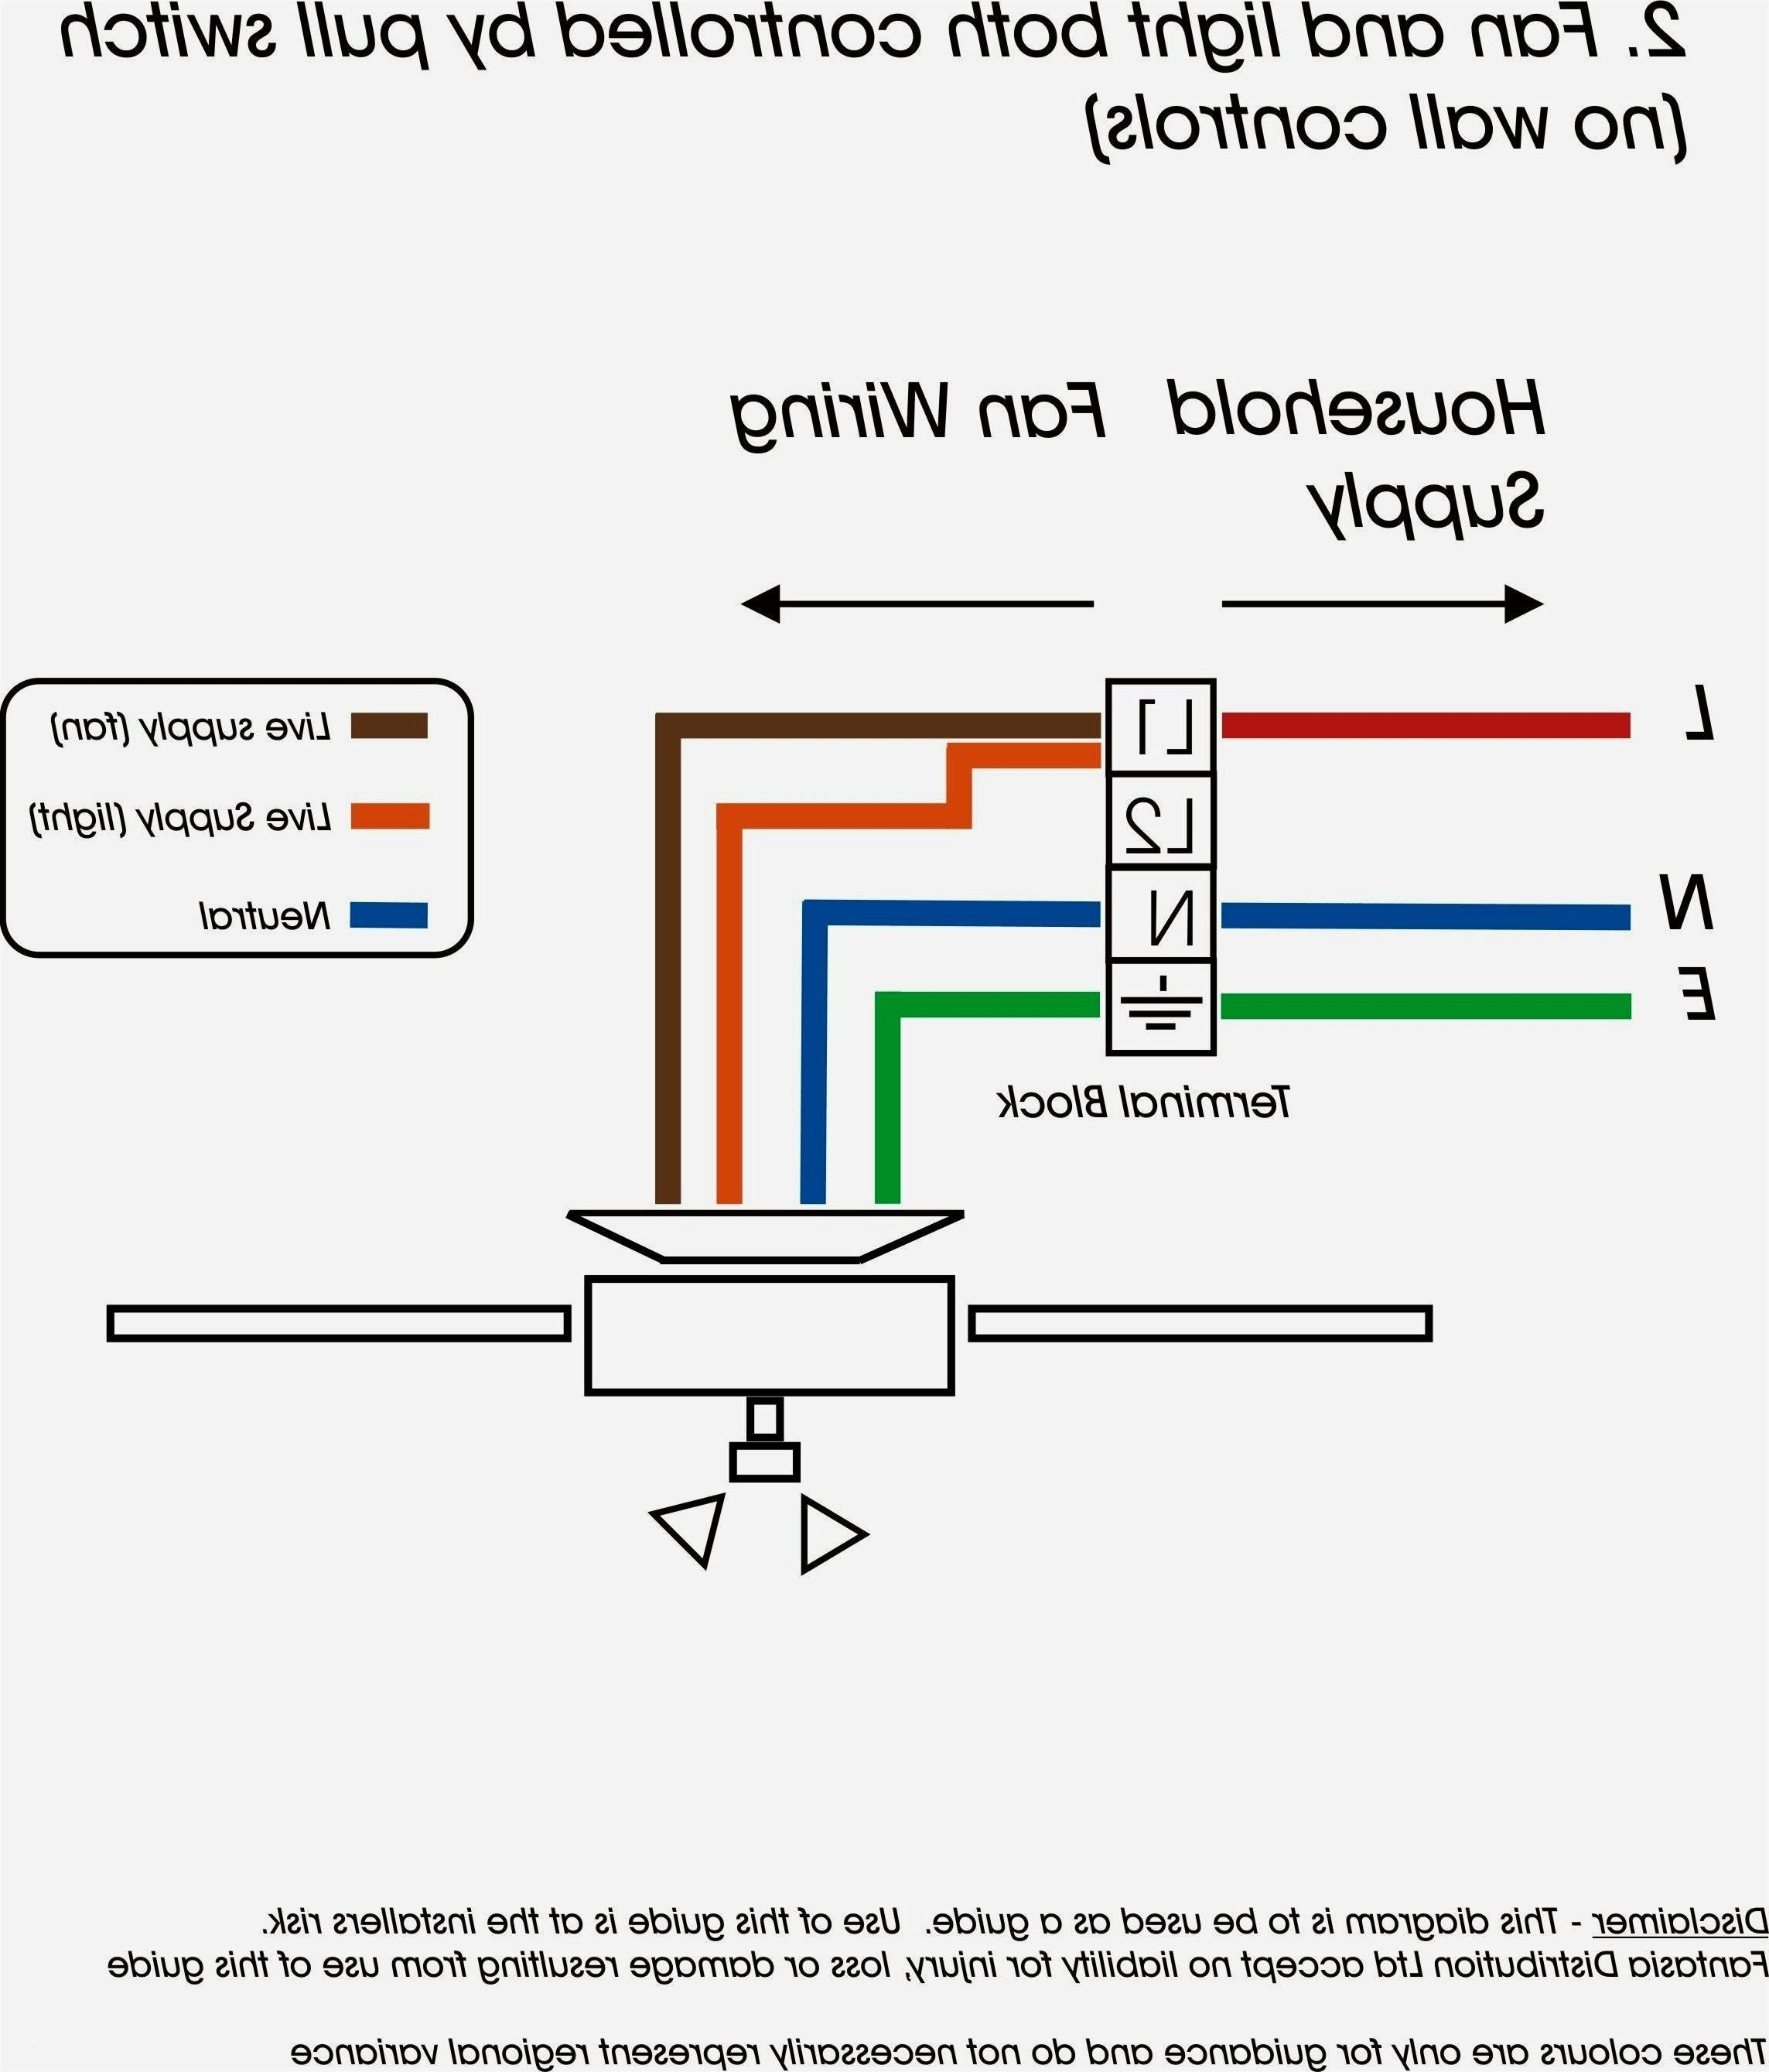 7 prong trailer wiring diagram Download-Wiring Diagram For A 7 Round Trailer Plug Fresh Wiring Diagram For 7 Round Trailer New 4 Prong Trailer Wiring 4-n